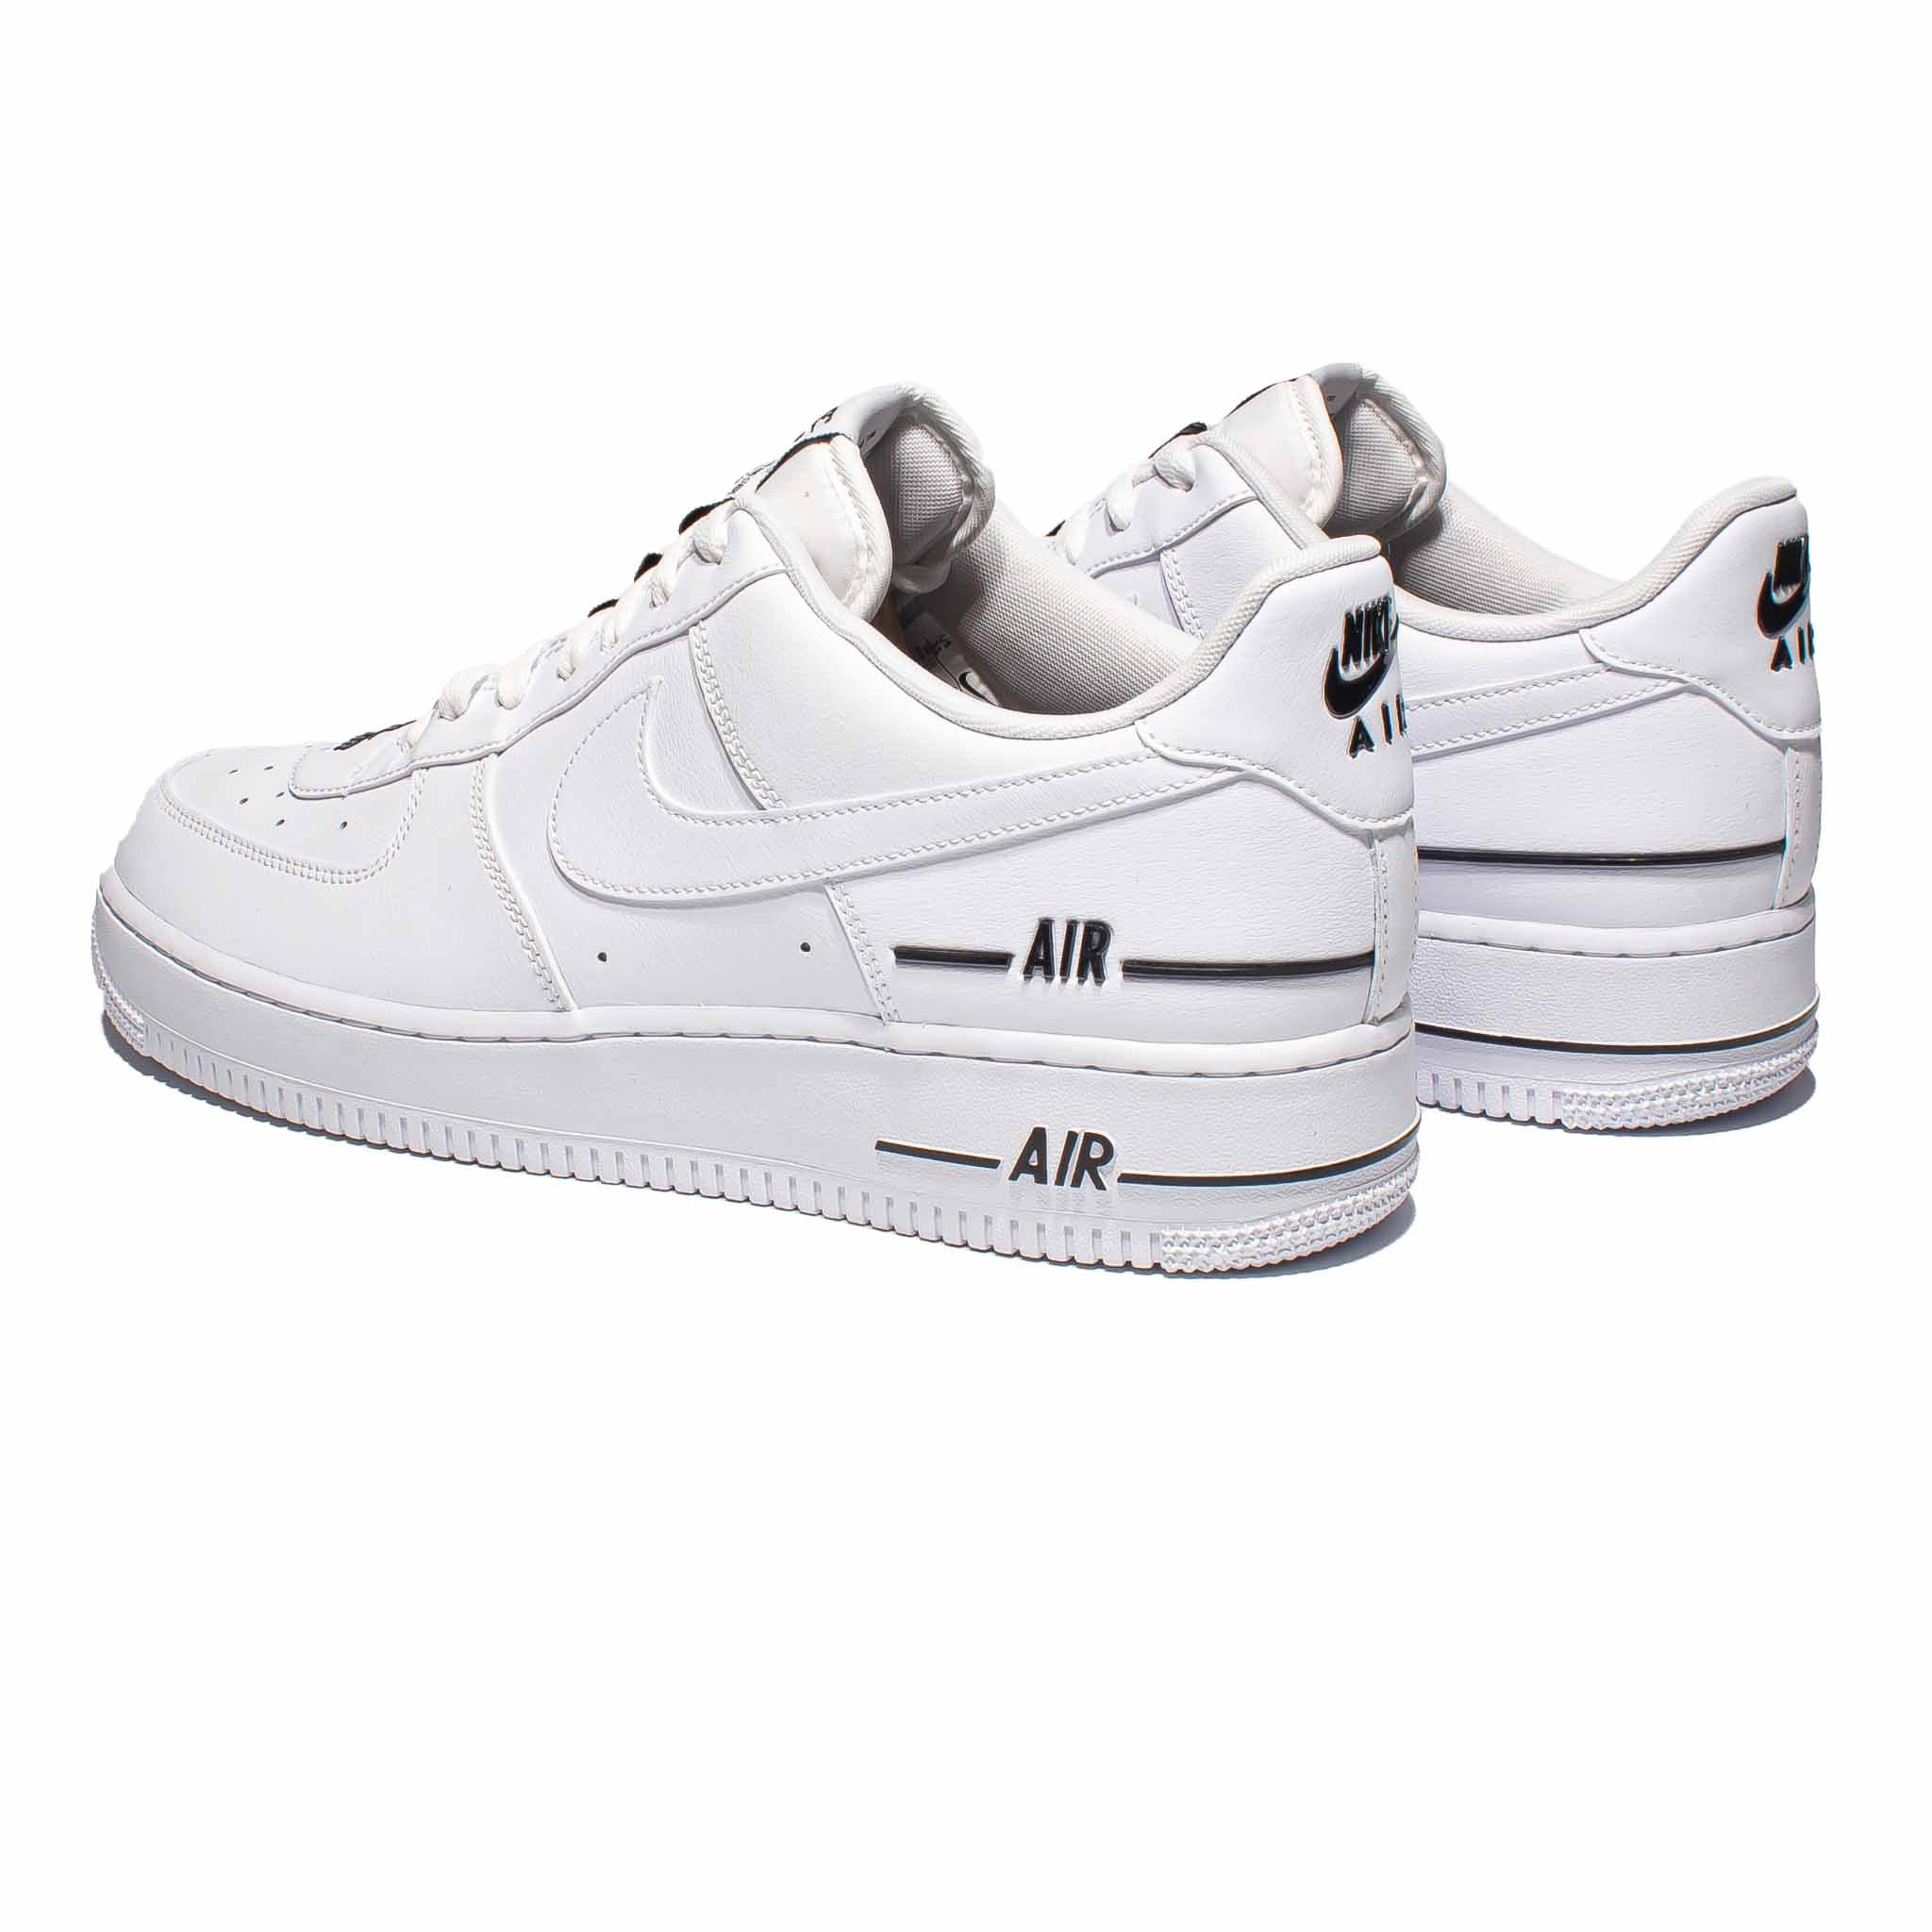 Nike Air Force 1 '07 LV8 3 'Double Air' White